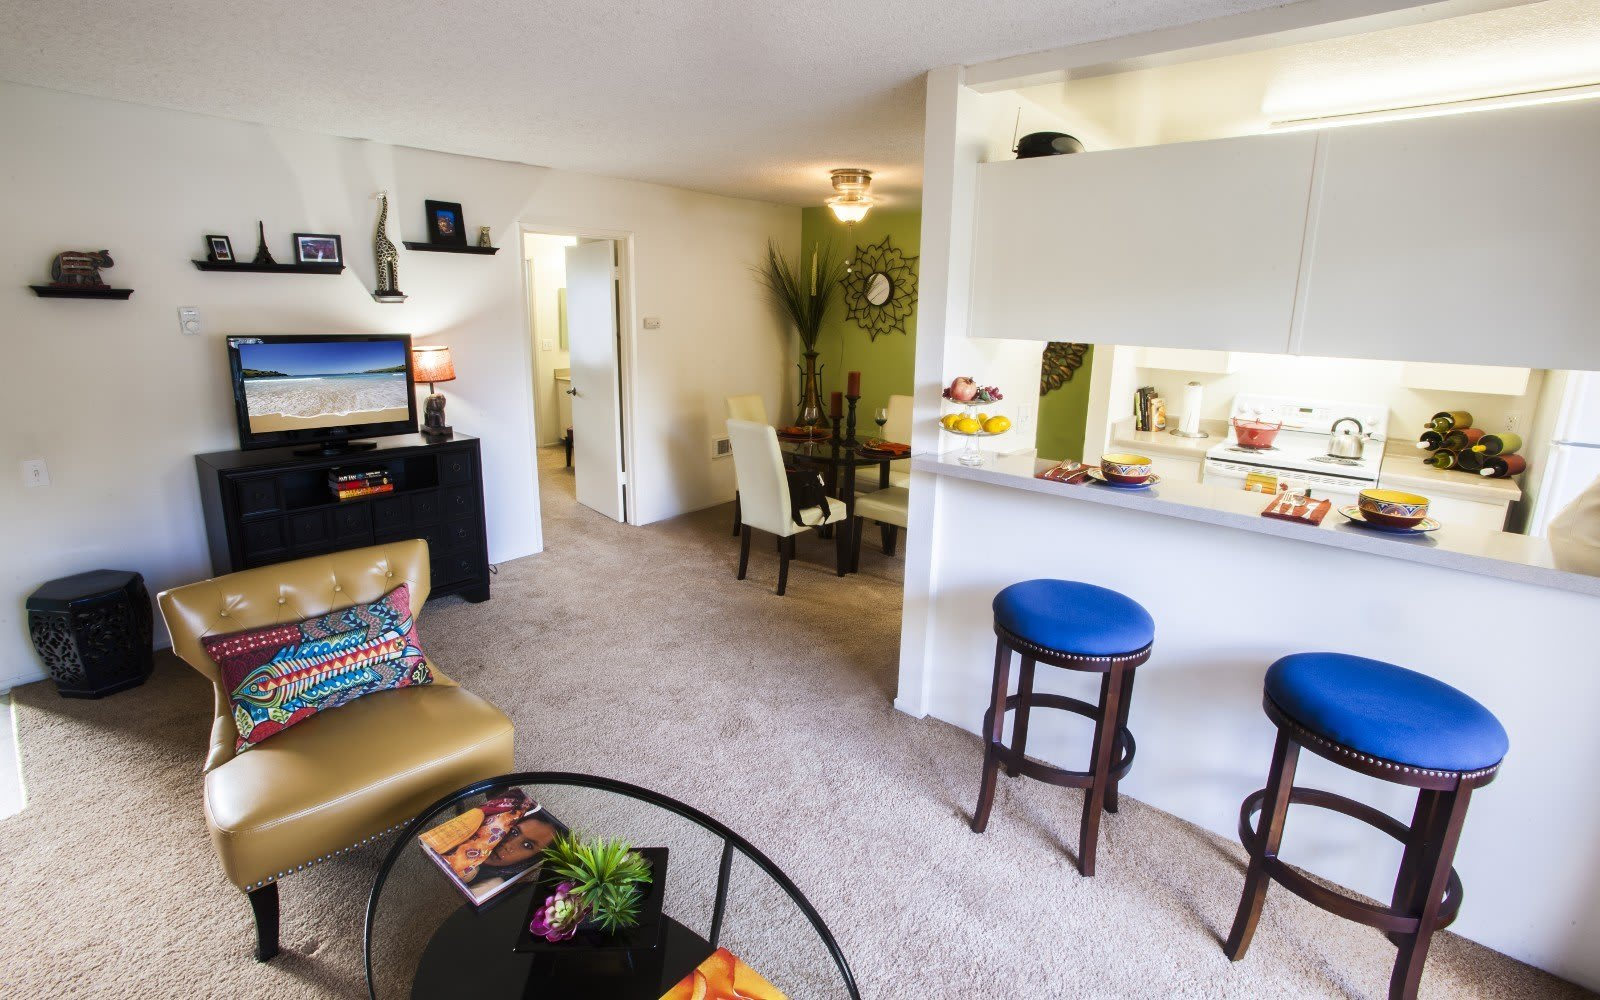 Kitchen and dining room at Pacific Oaks Apartments